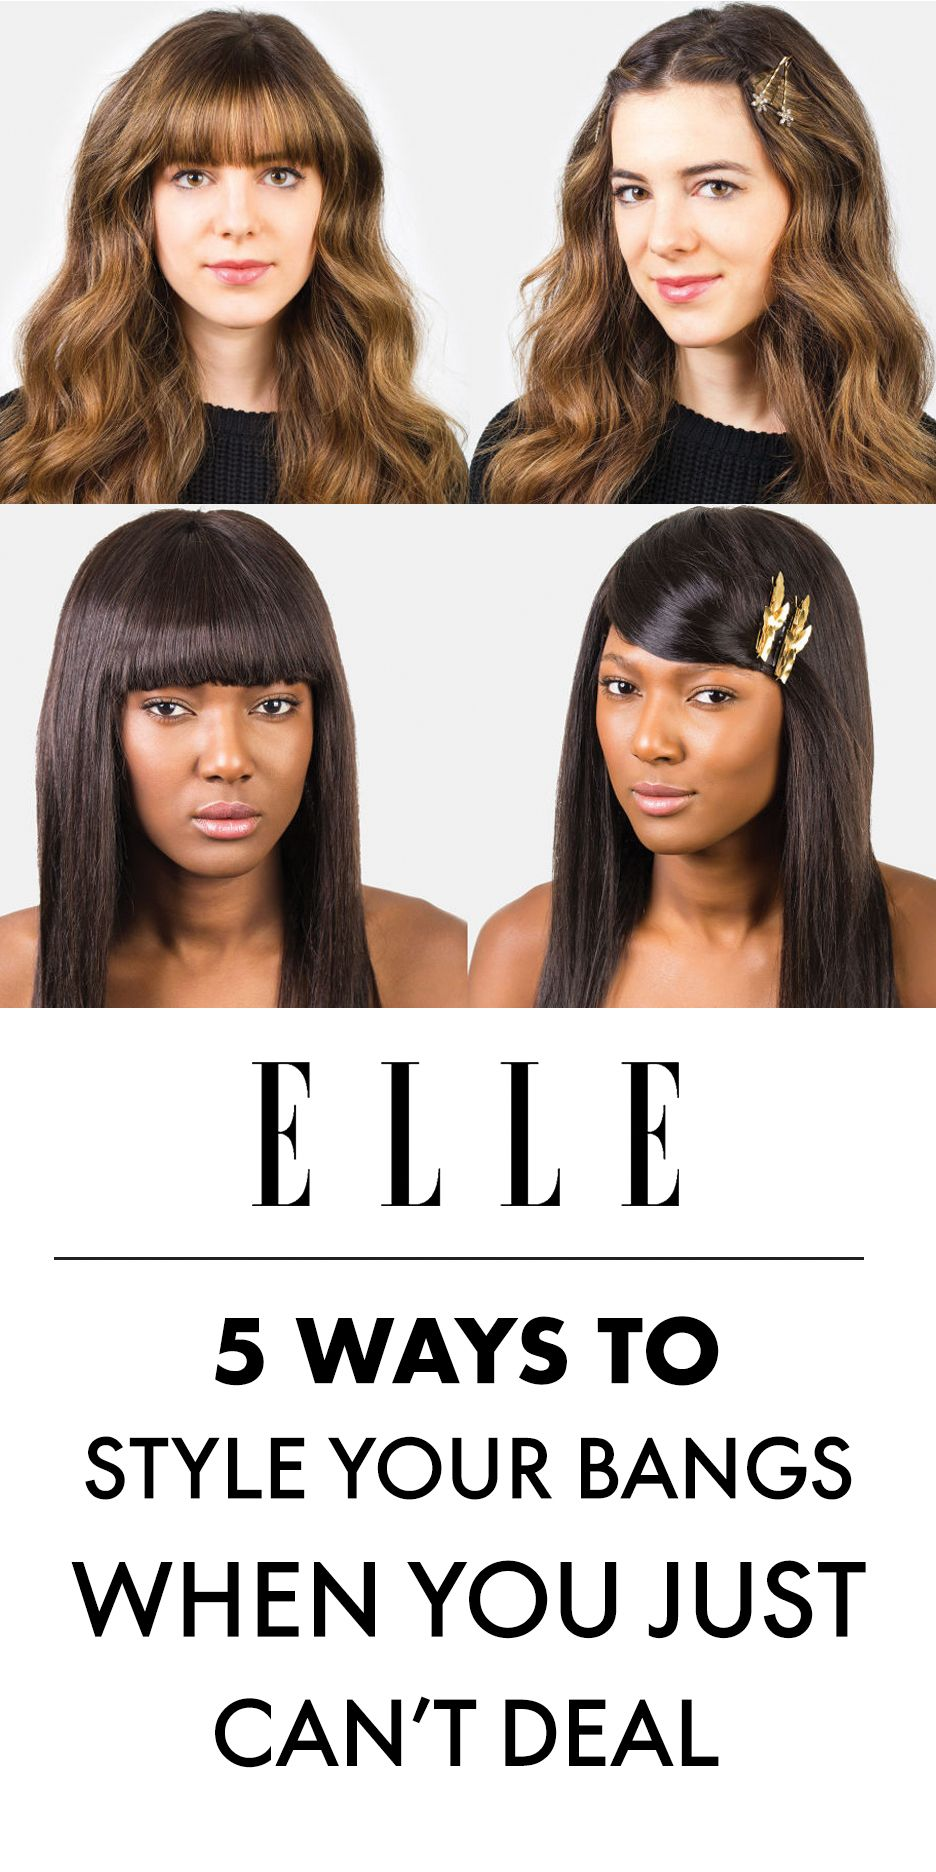 How to Style Bangs - 11 Hairstyles to Keep Your Bangs Out of Your Face